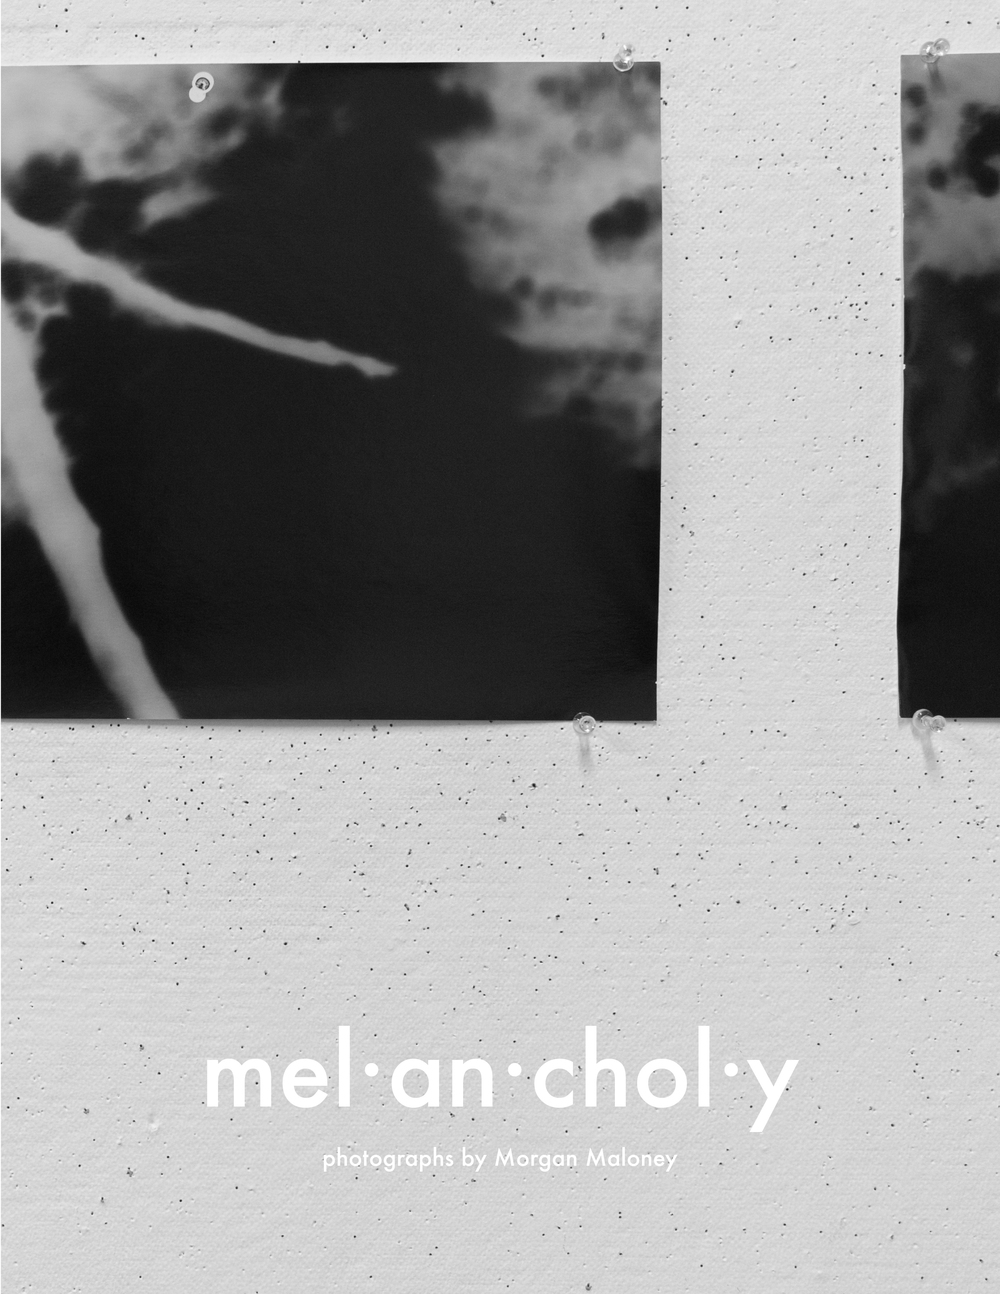 A selection of pages from the 2015 photo book  mel•an•choly